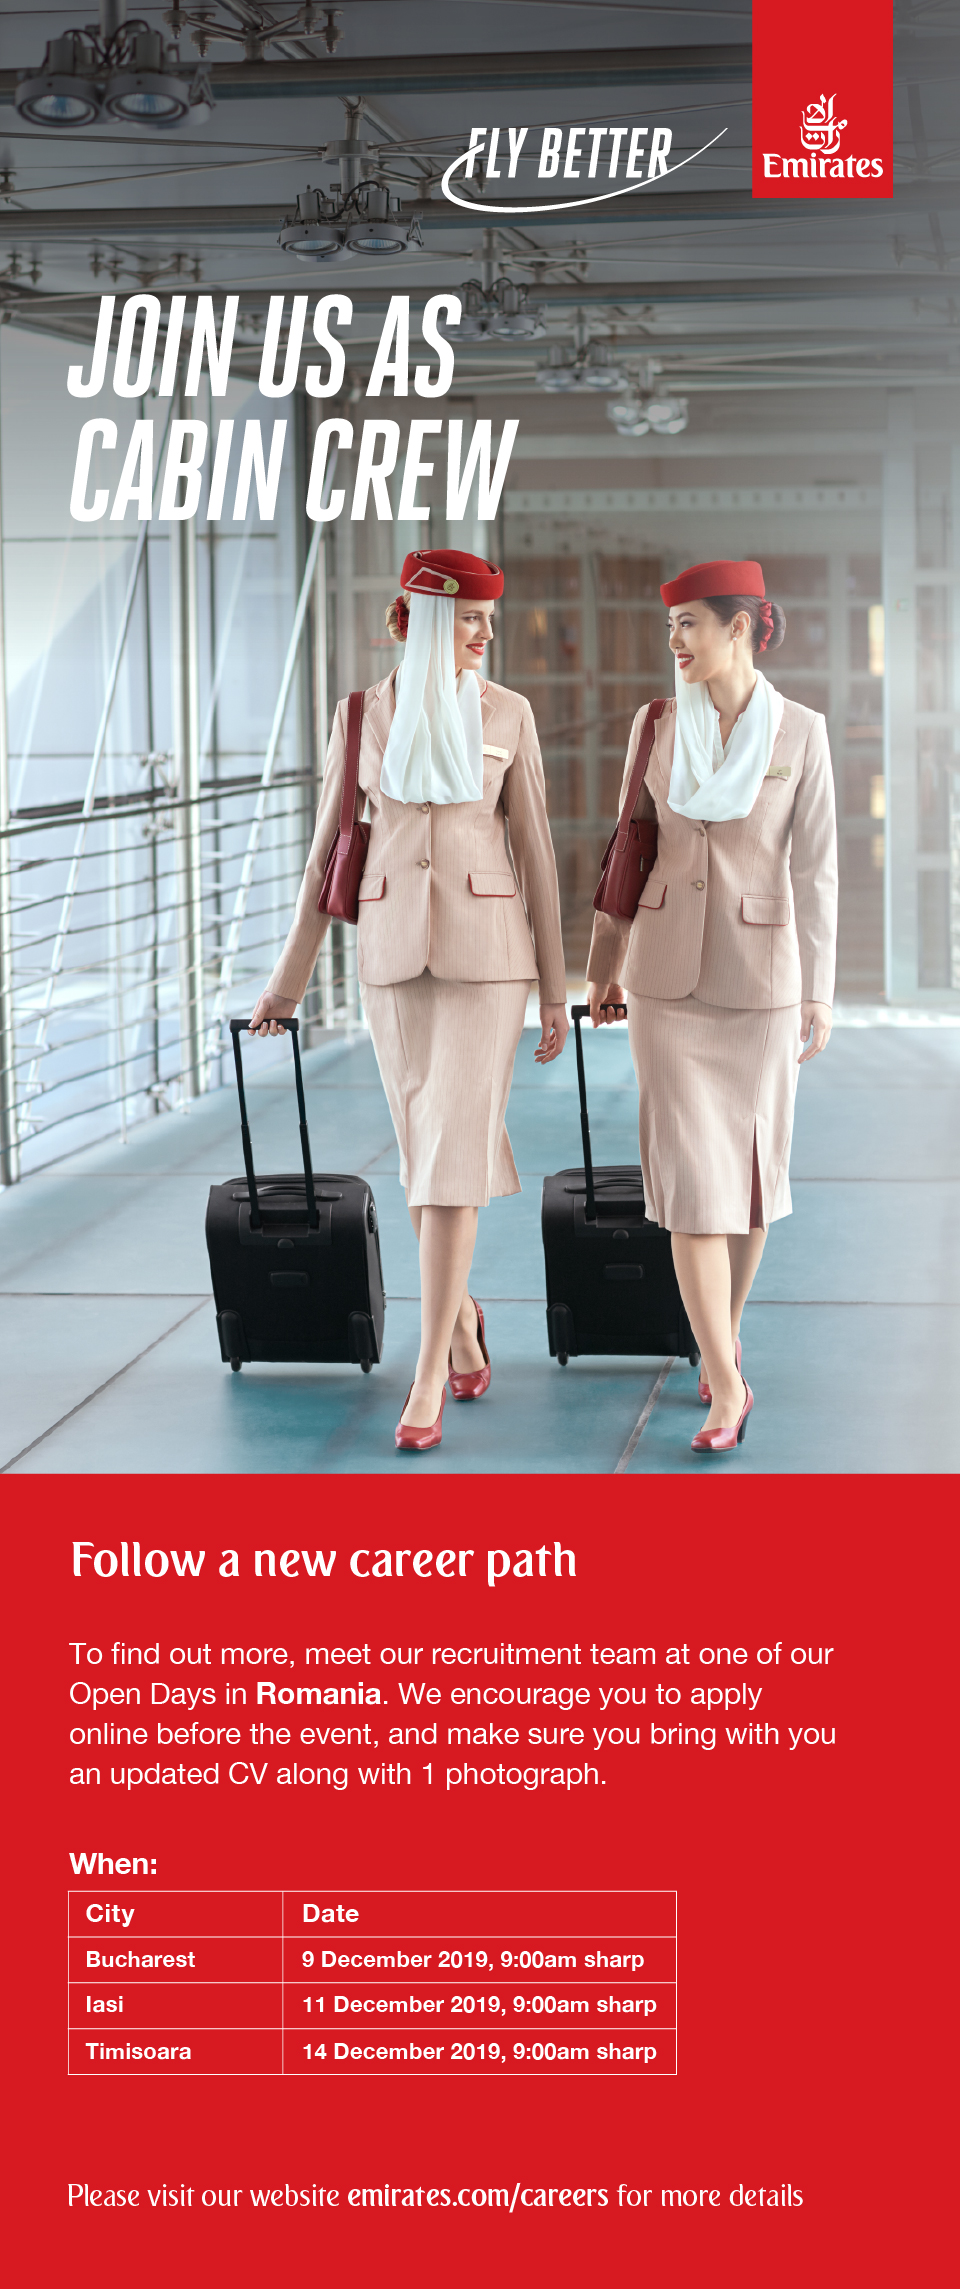 Cabin Crew, Bucuresti, Iasi, Timisoara